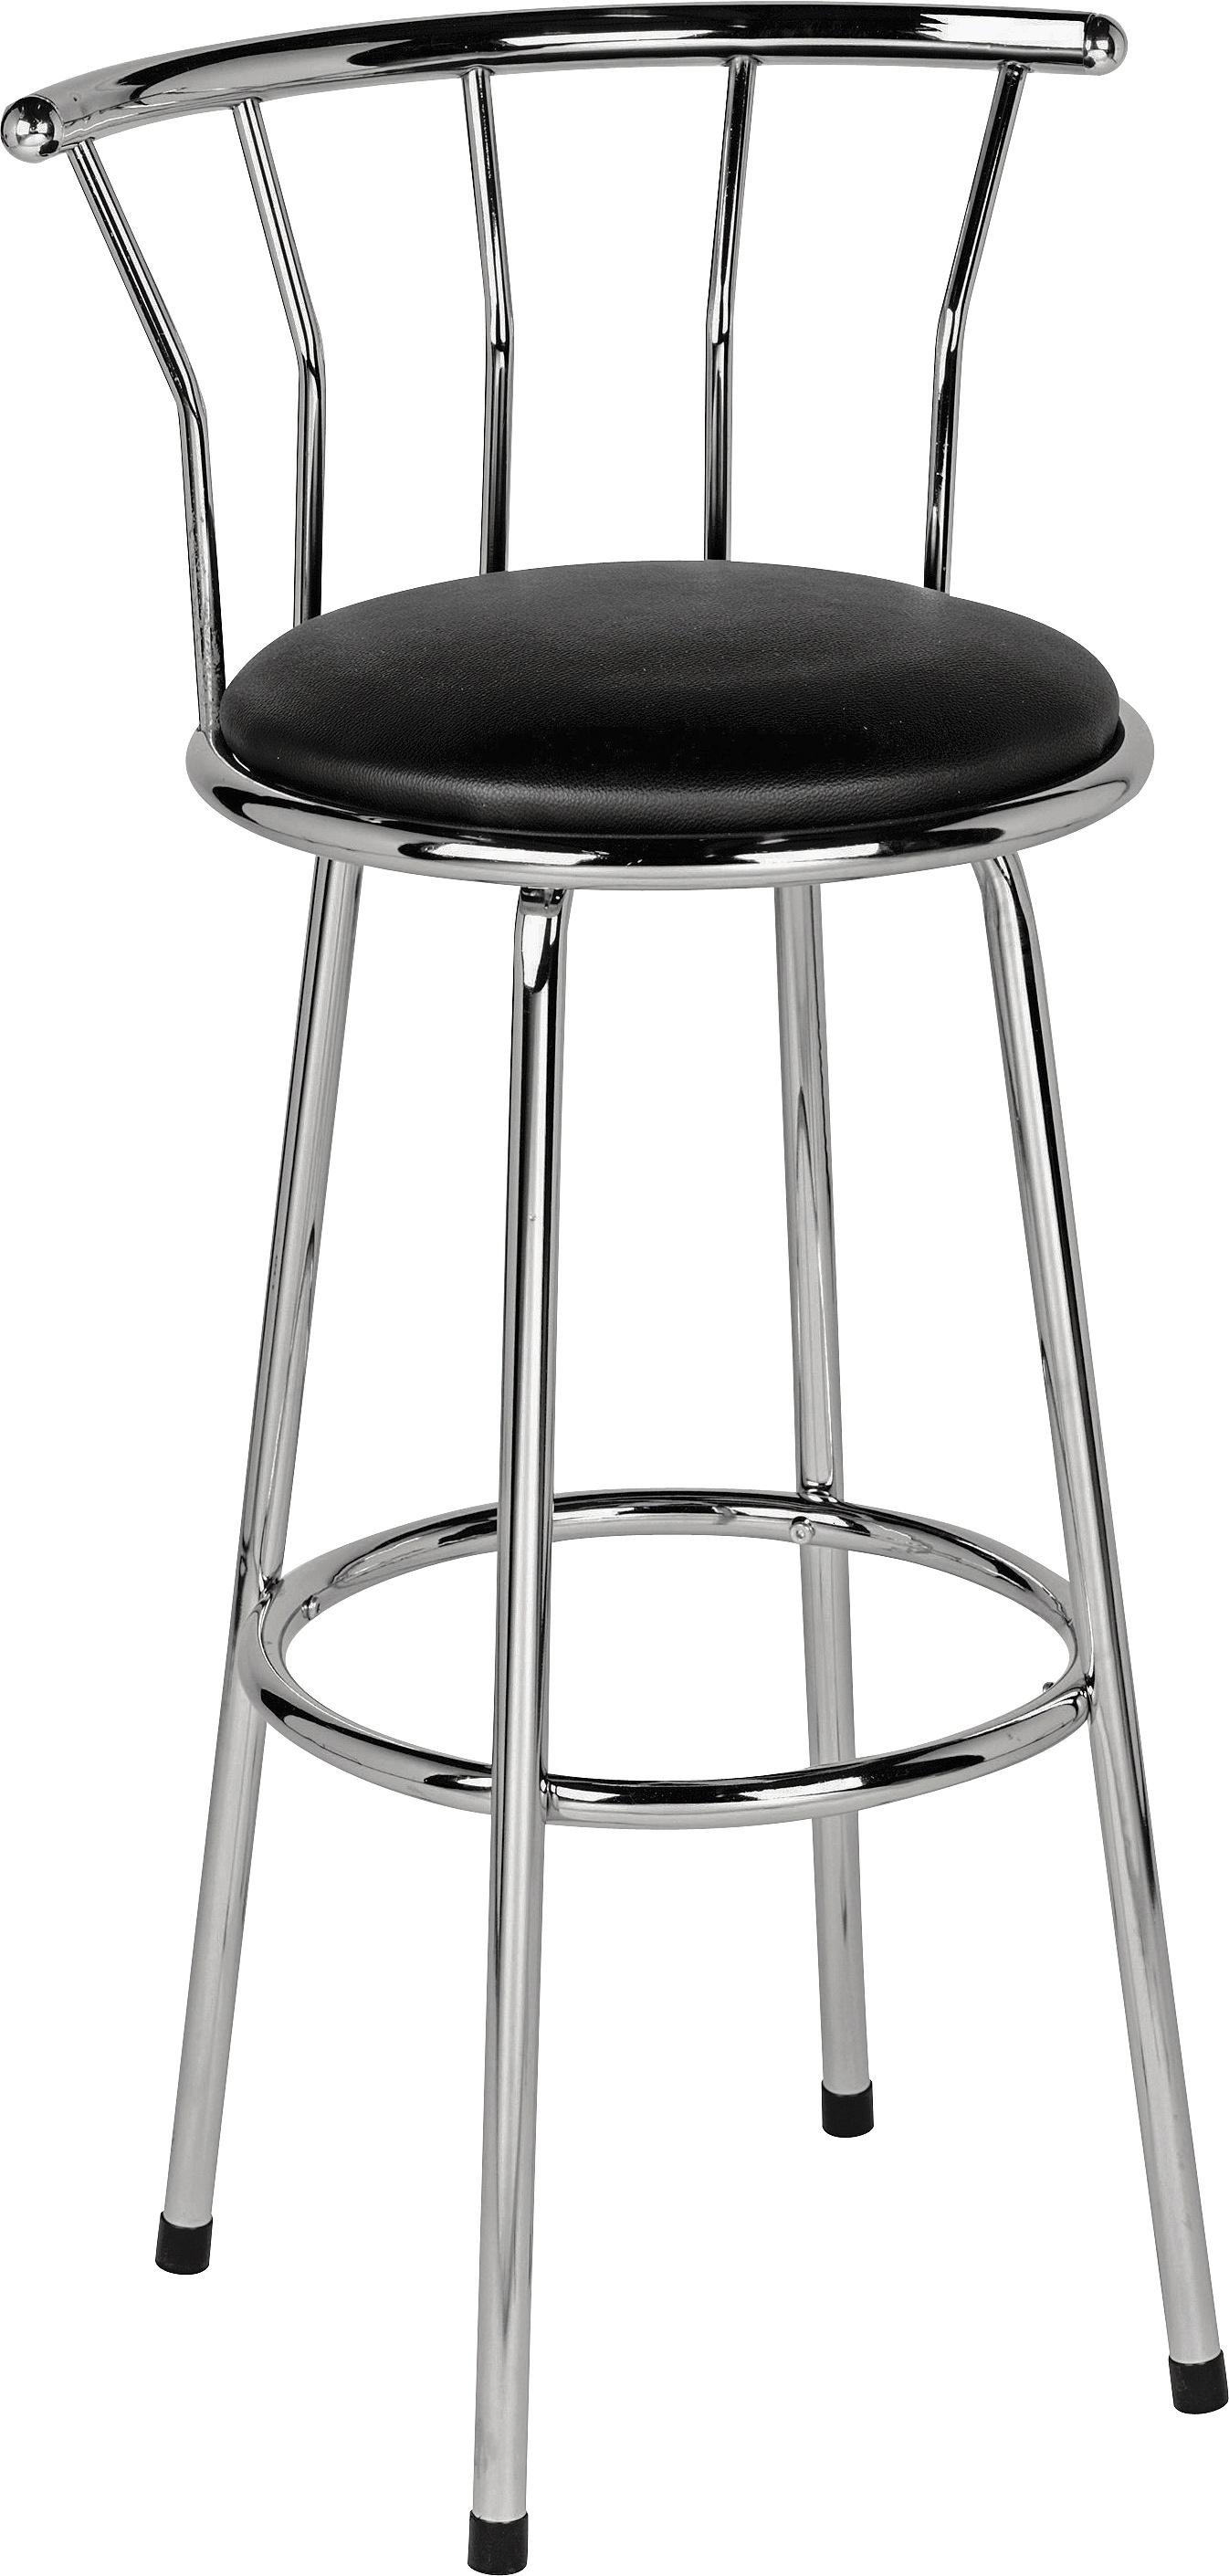 HOME Gemini Leather Effect Bar Stool - Black  sc 1 st  Argos : bar stool black leather - islam-shia.org